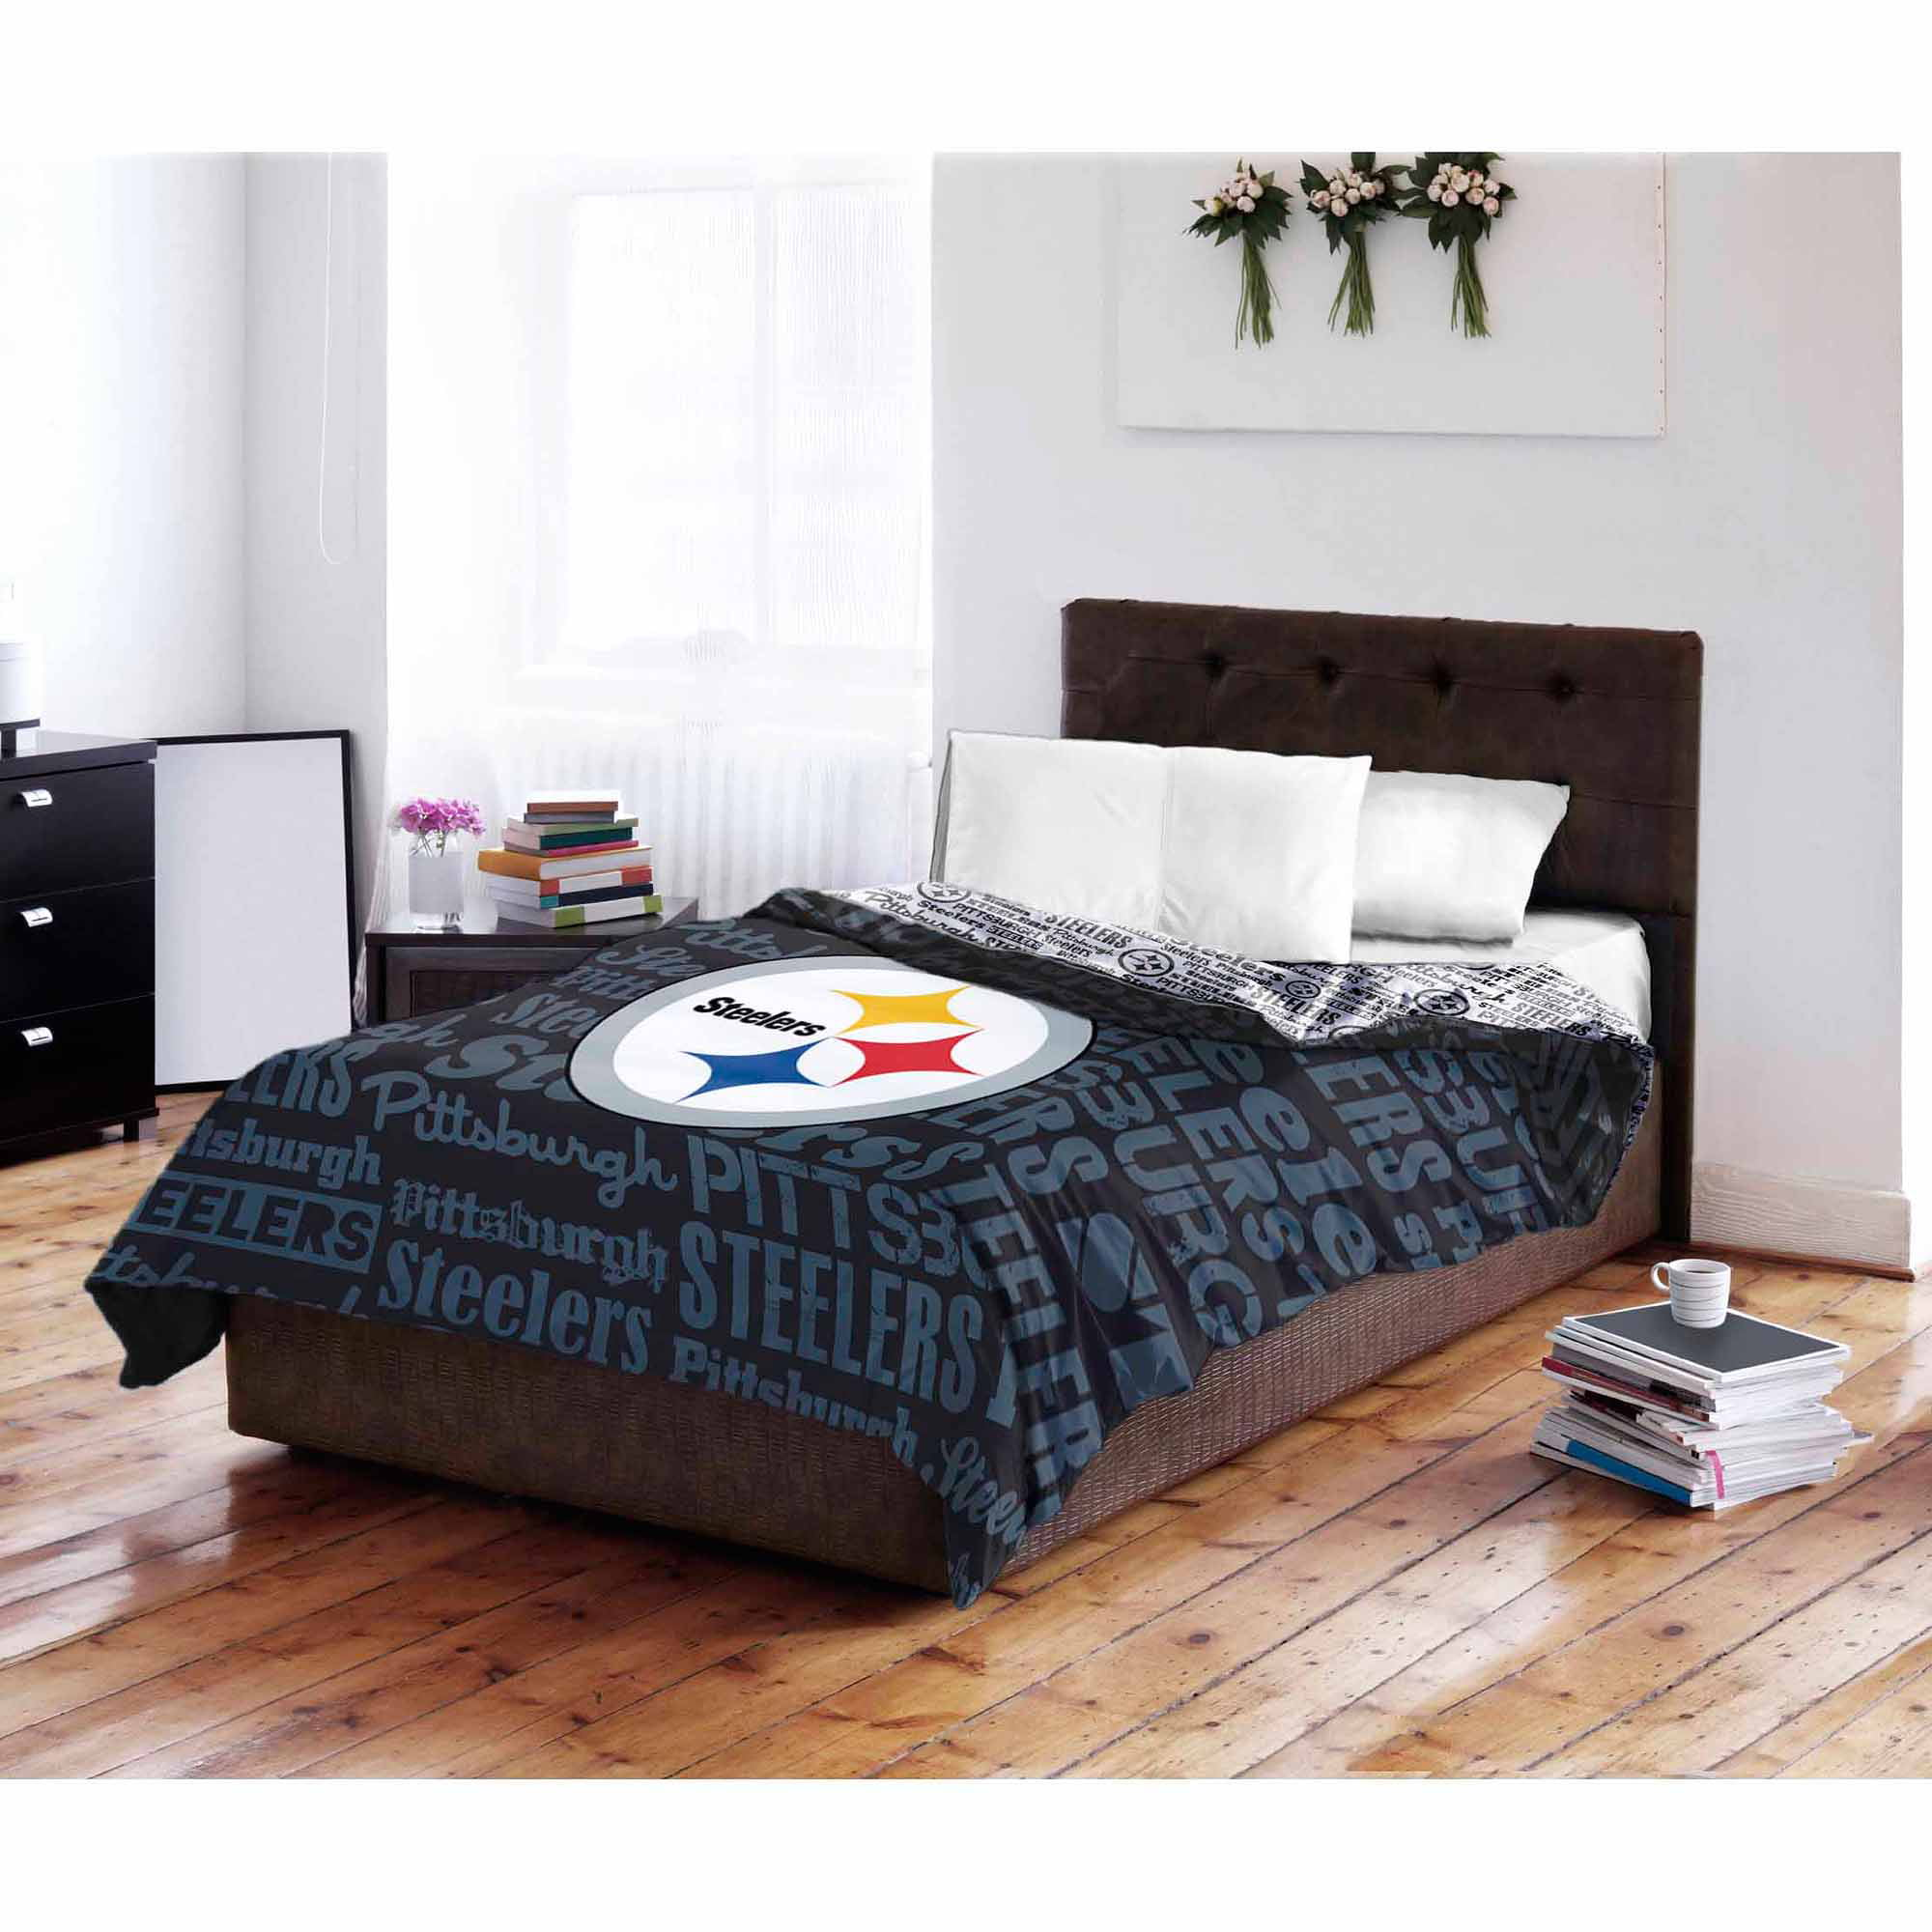 Beau NFL Dallas Cowboys Bed In A Bag Complete Bedding Set   Walmart.com